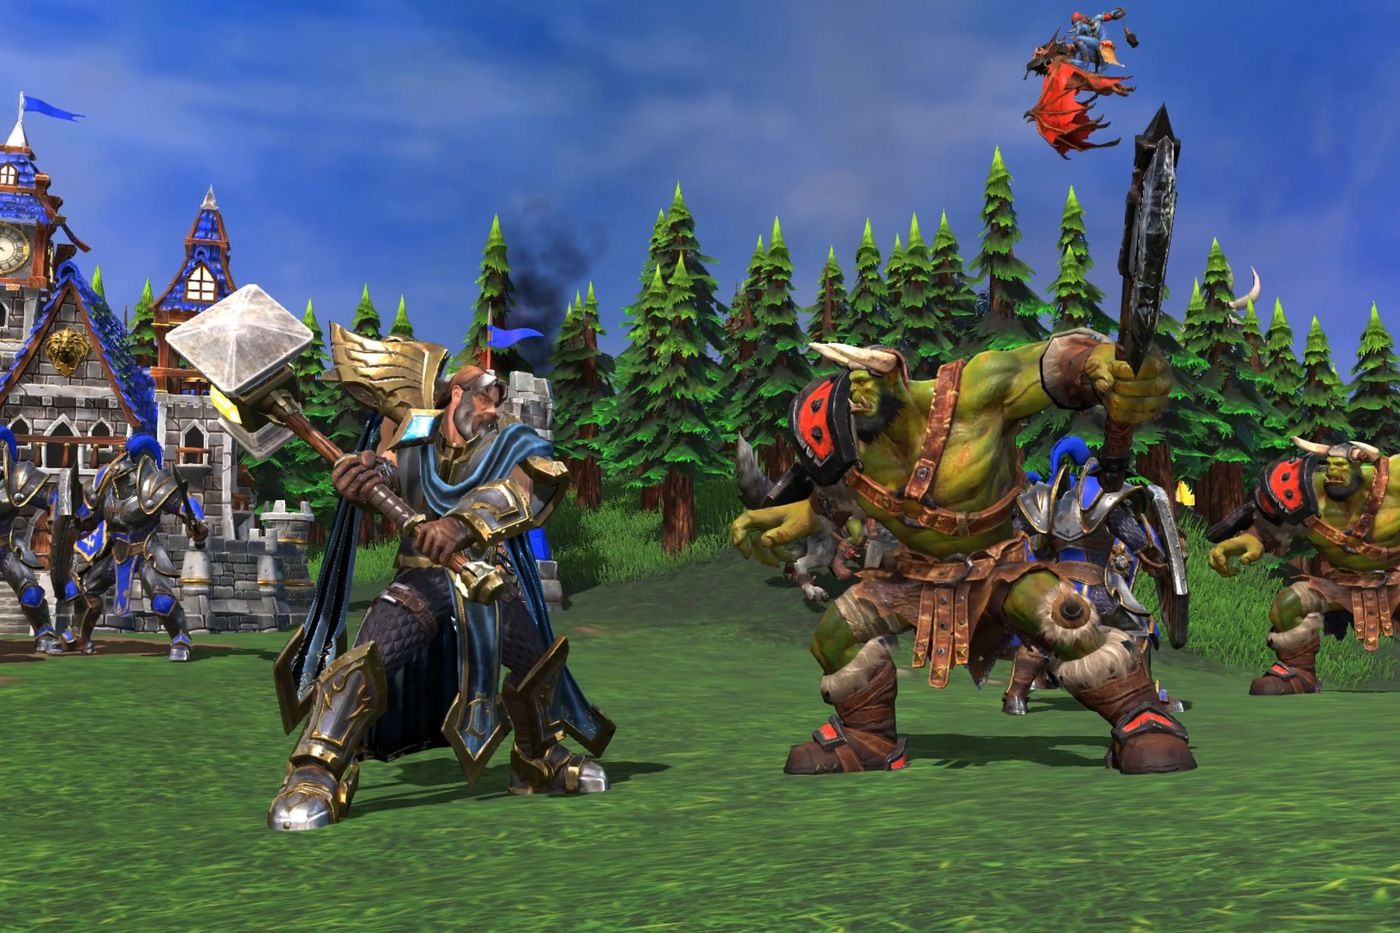 Warcraft 3 Reforged Is More Than Just A Remaster Of Blizzard S